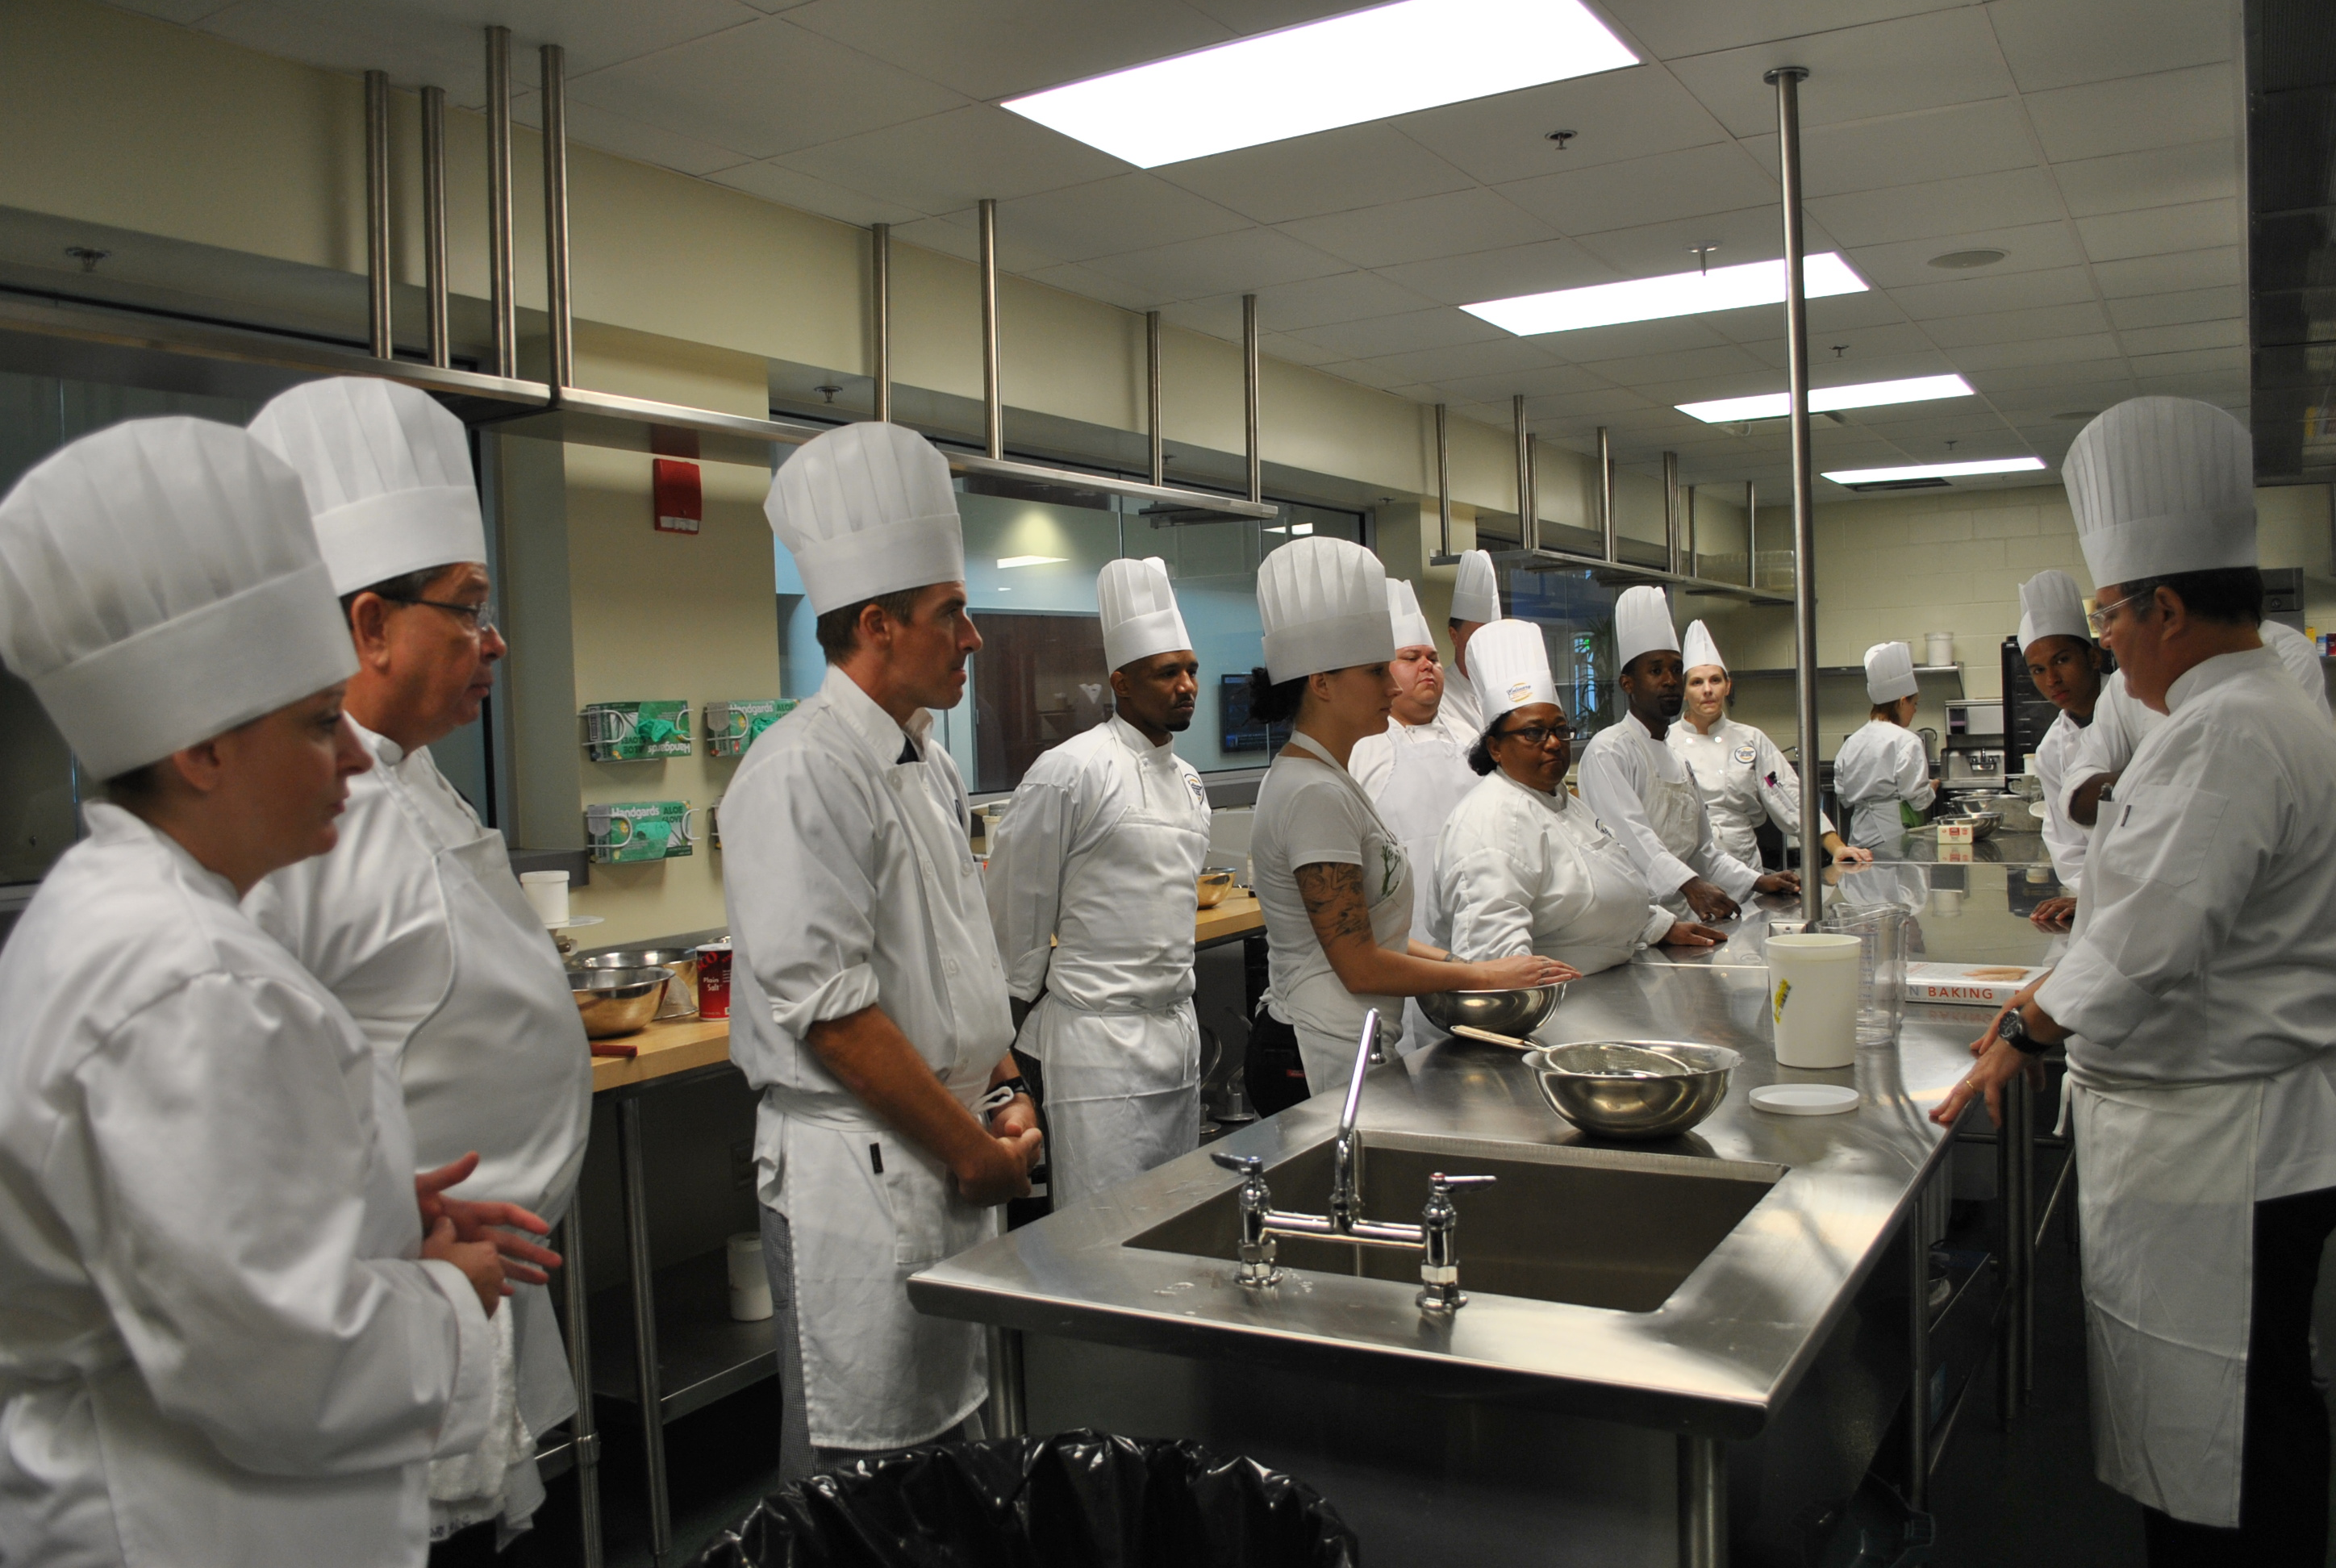 Culinary Arts Certificate Program